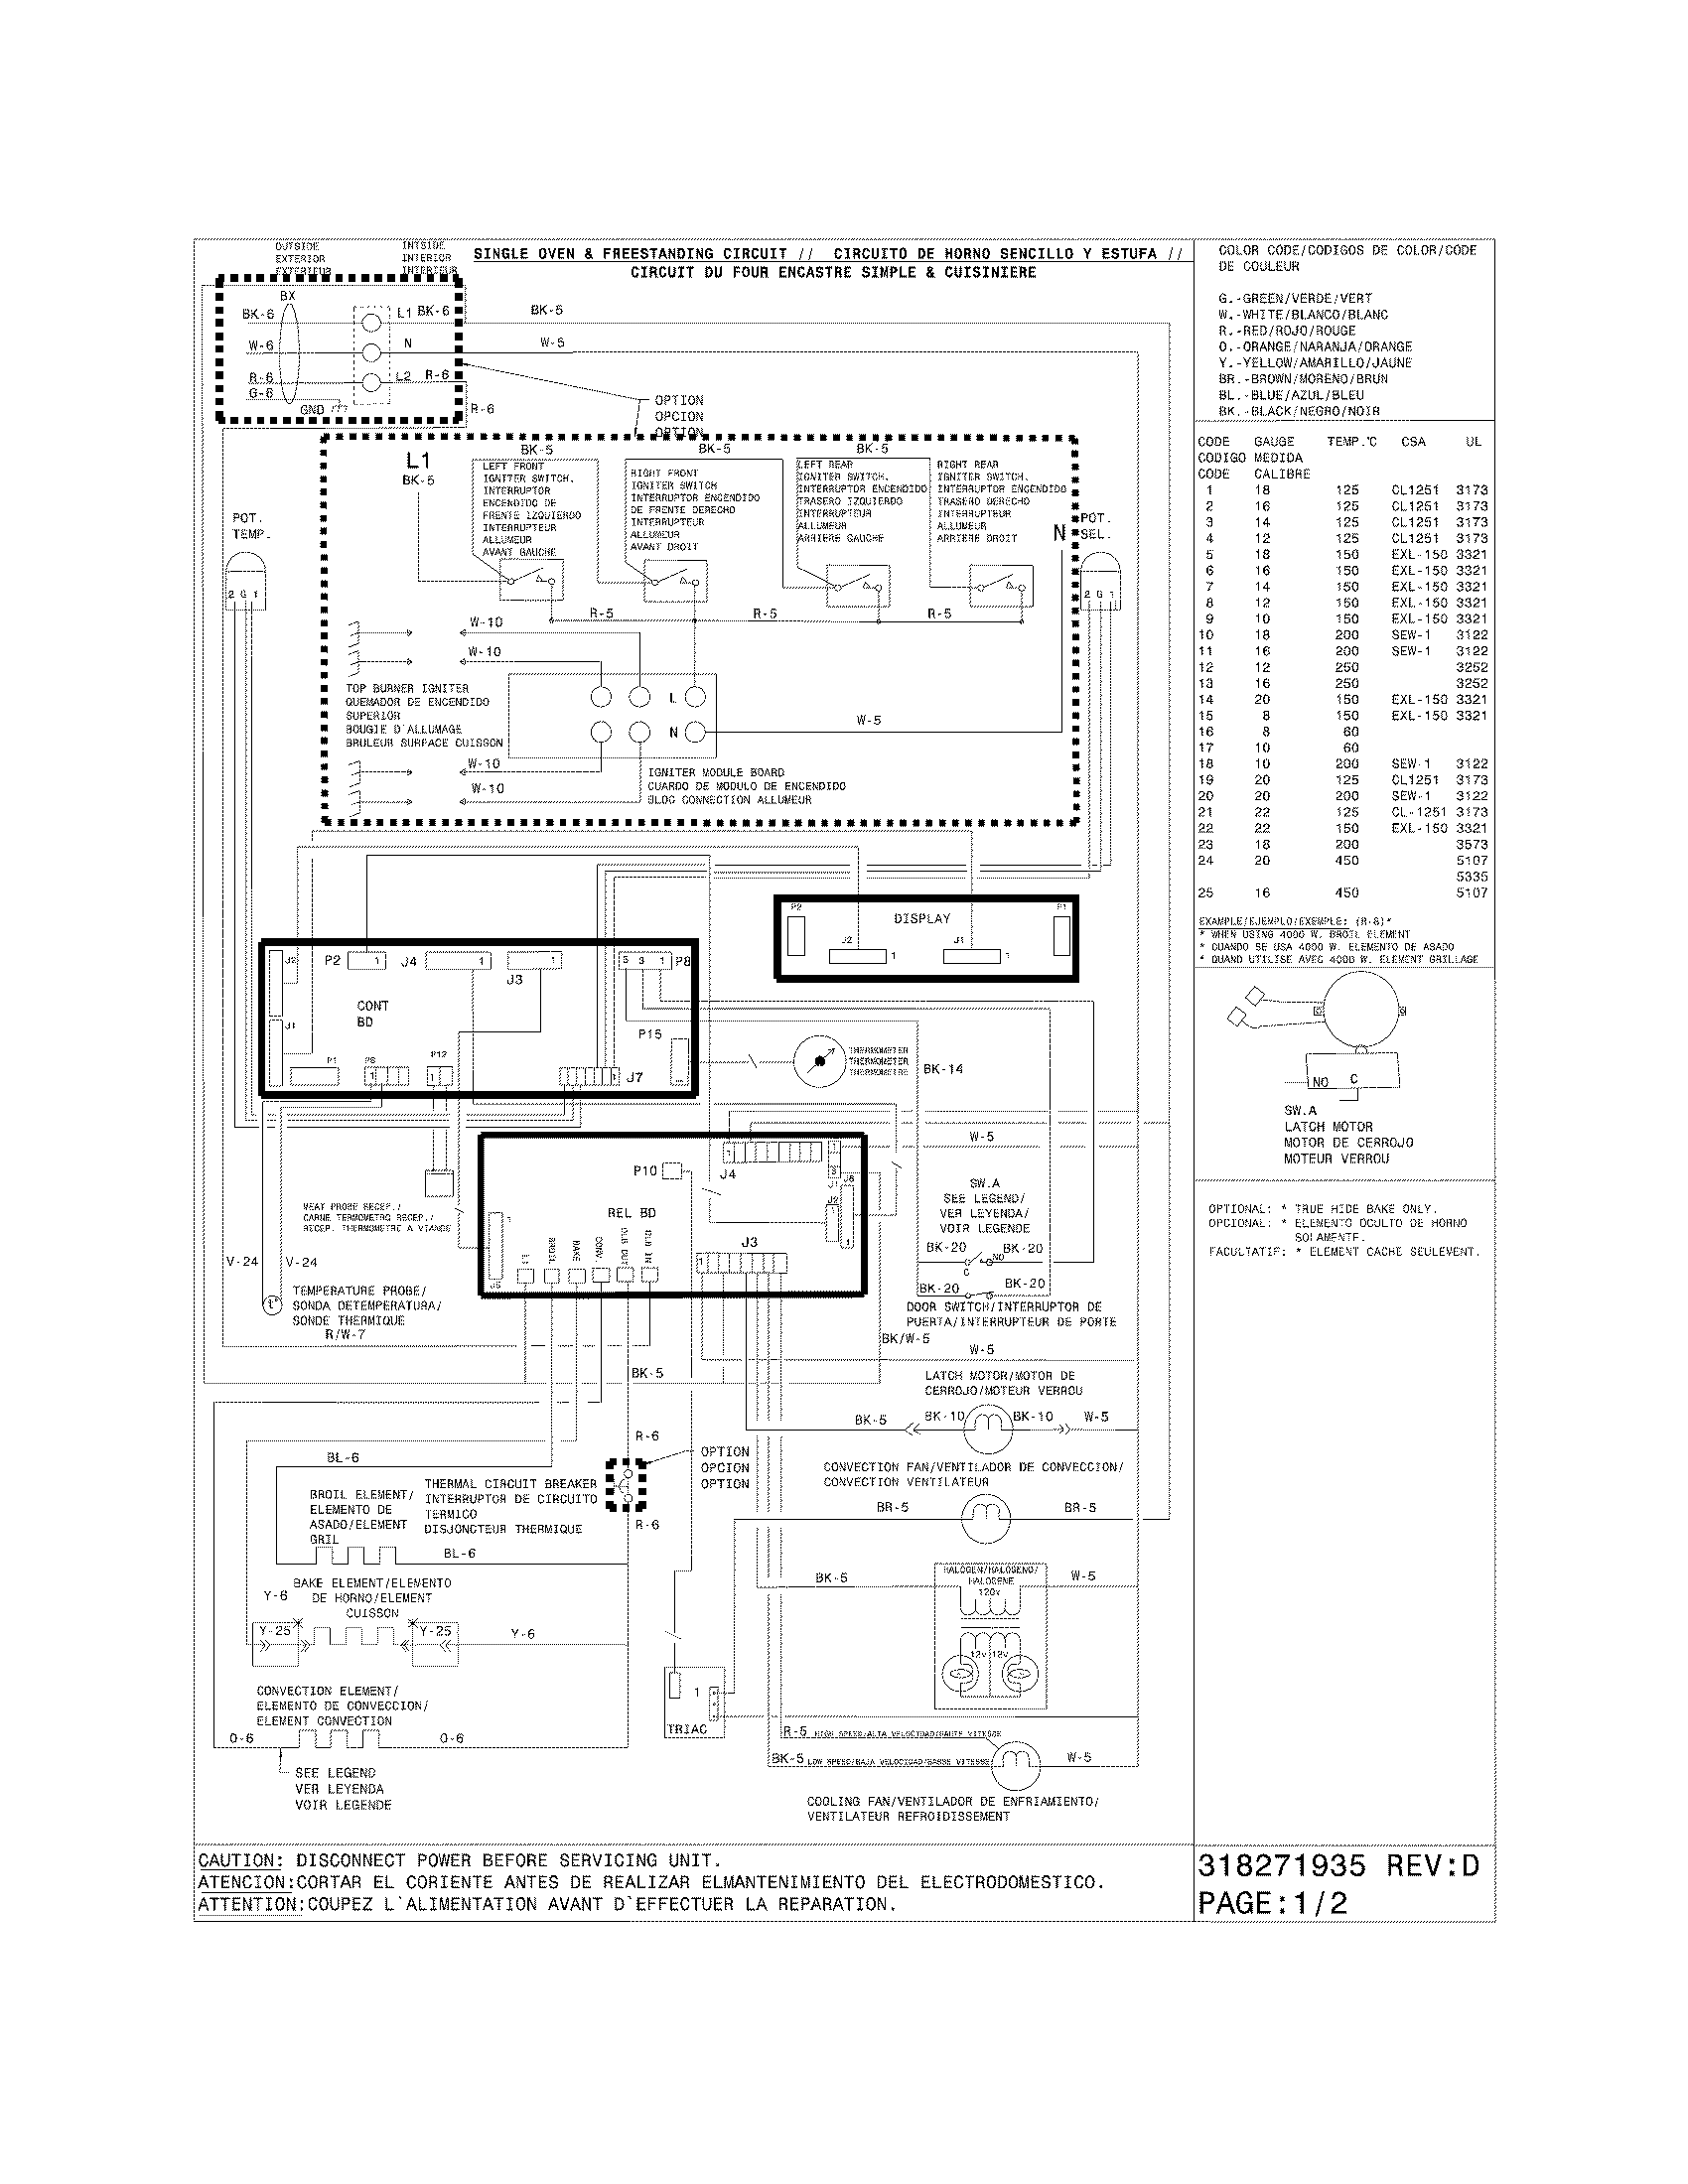 Kenmore Elite Range Repair Manual